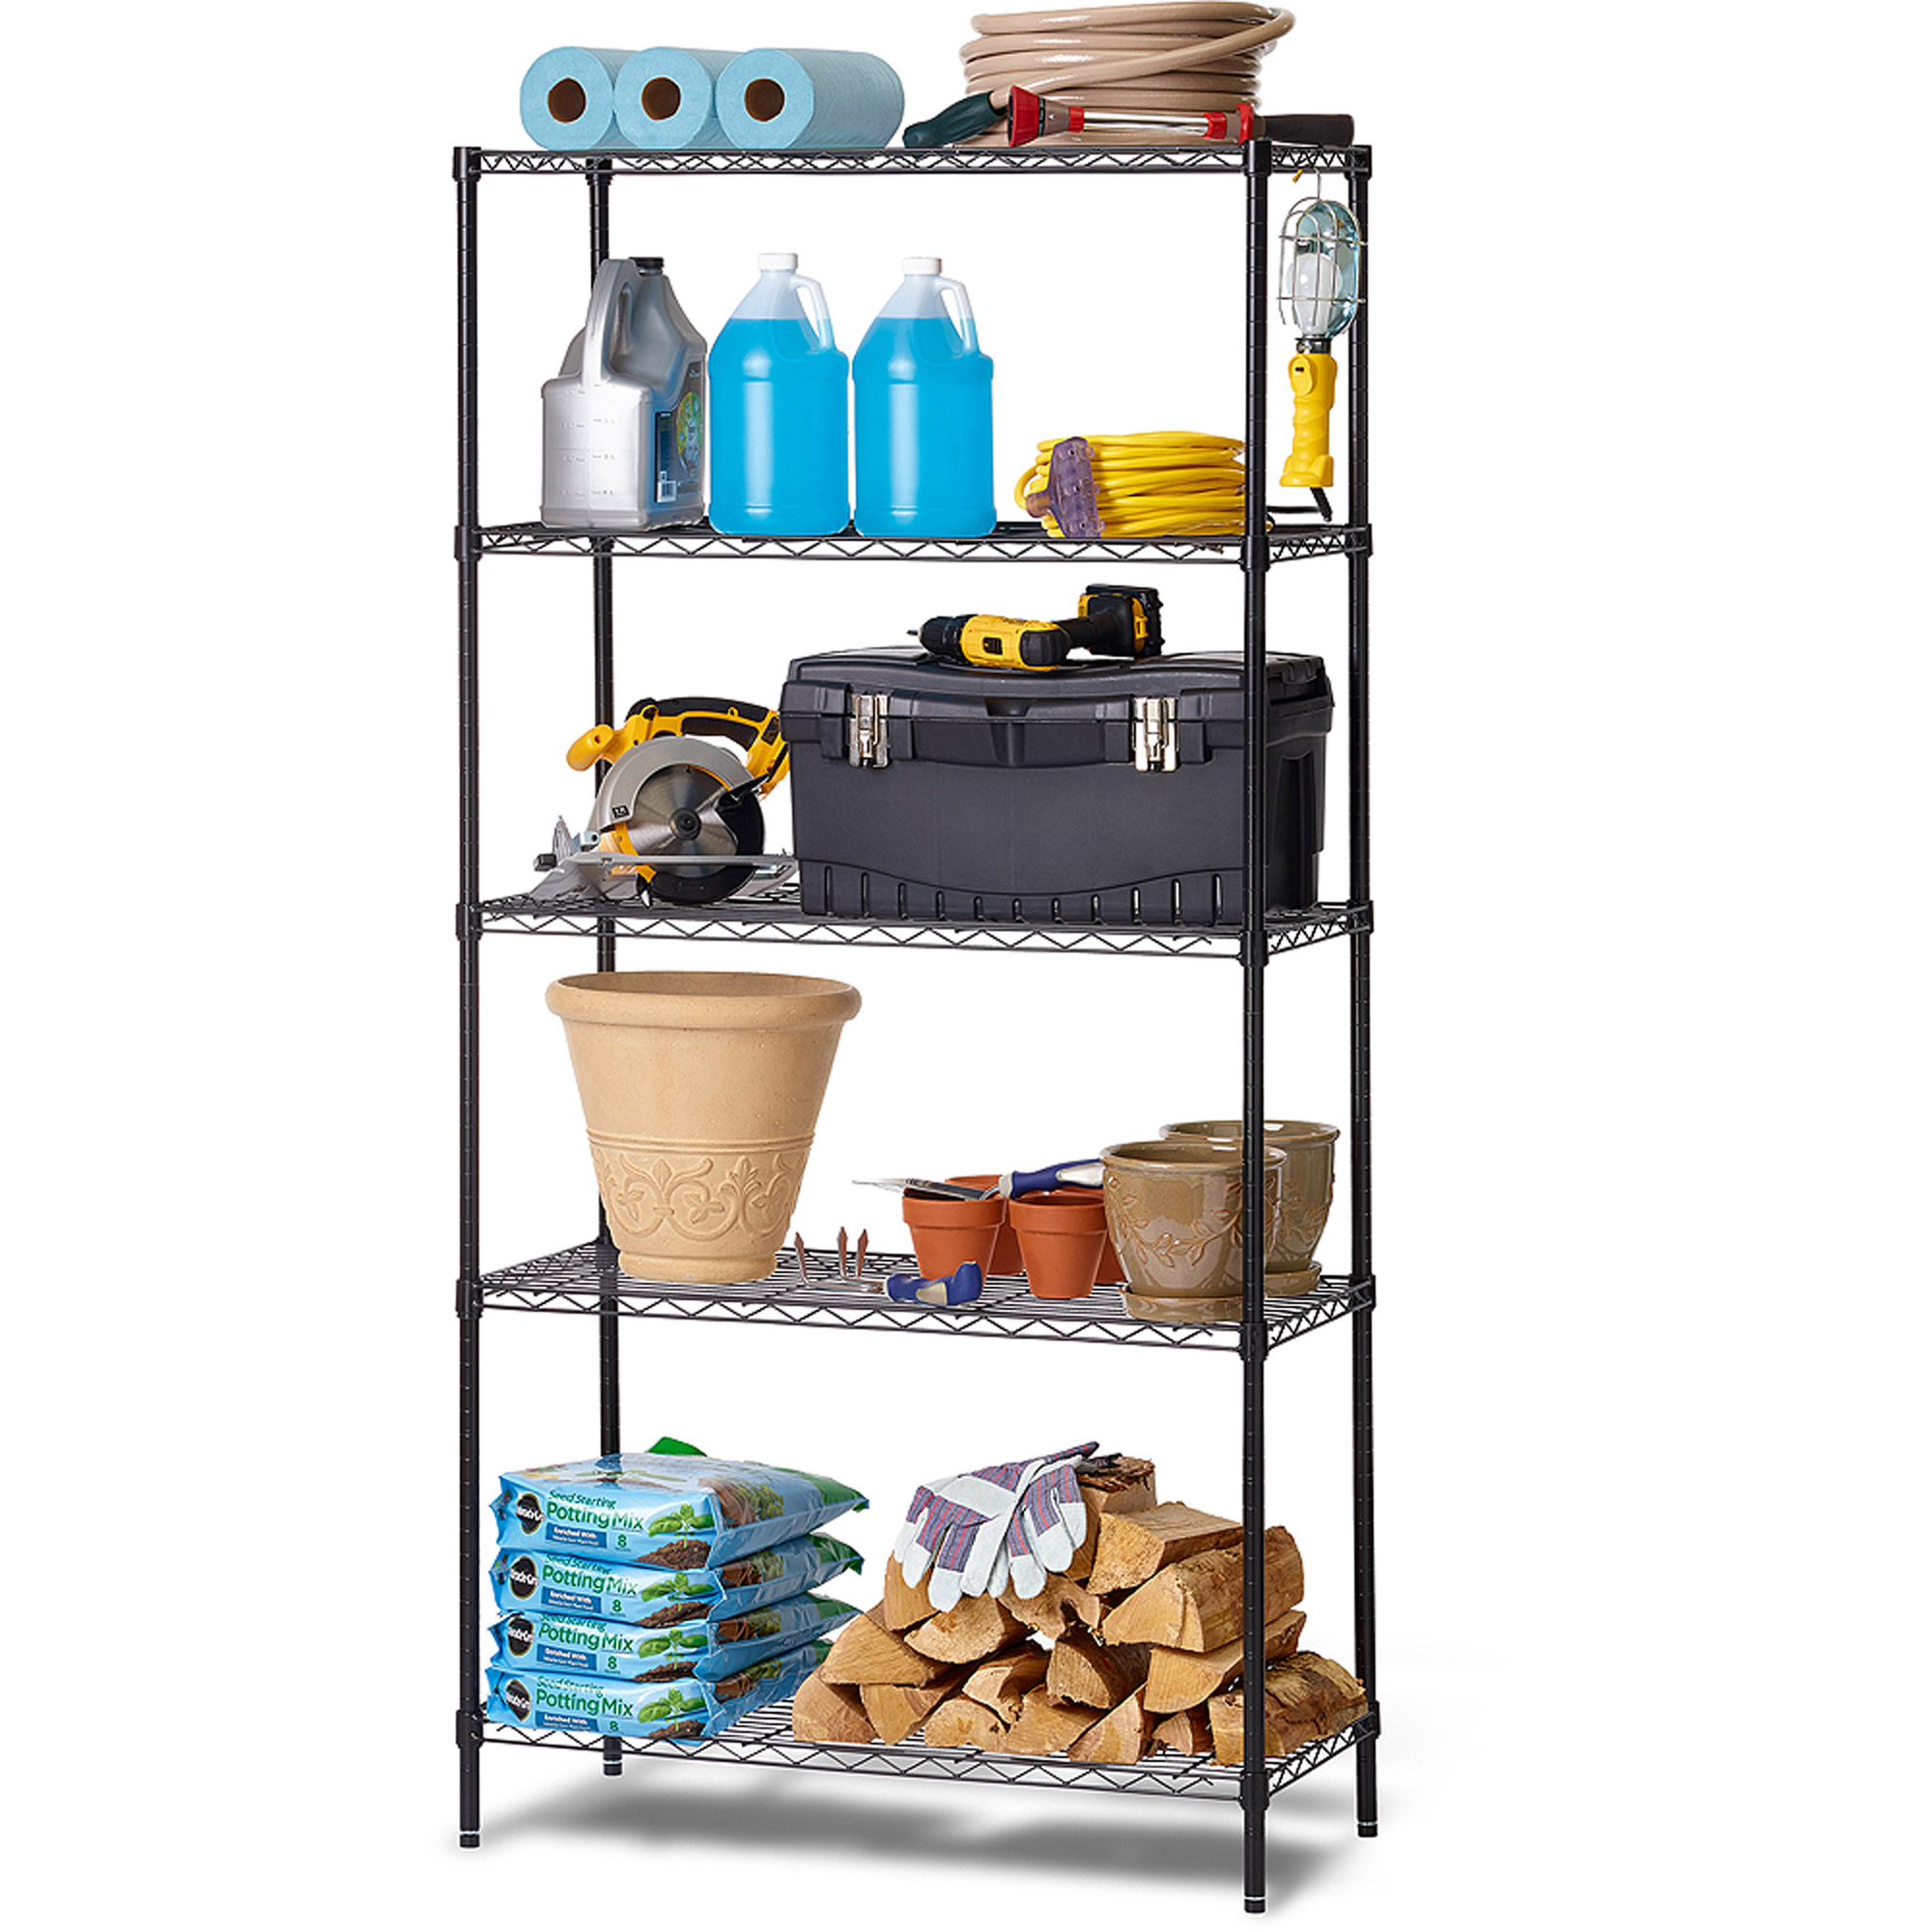 Work Choice 5 Tier mercial Wire Shelving Rack Black